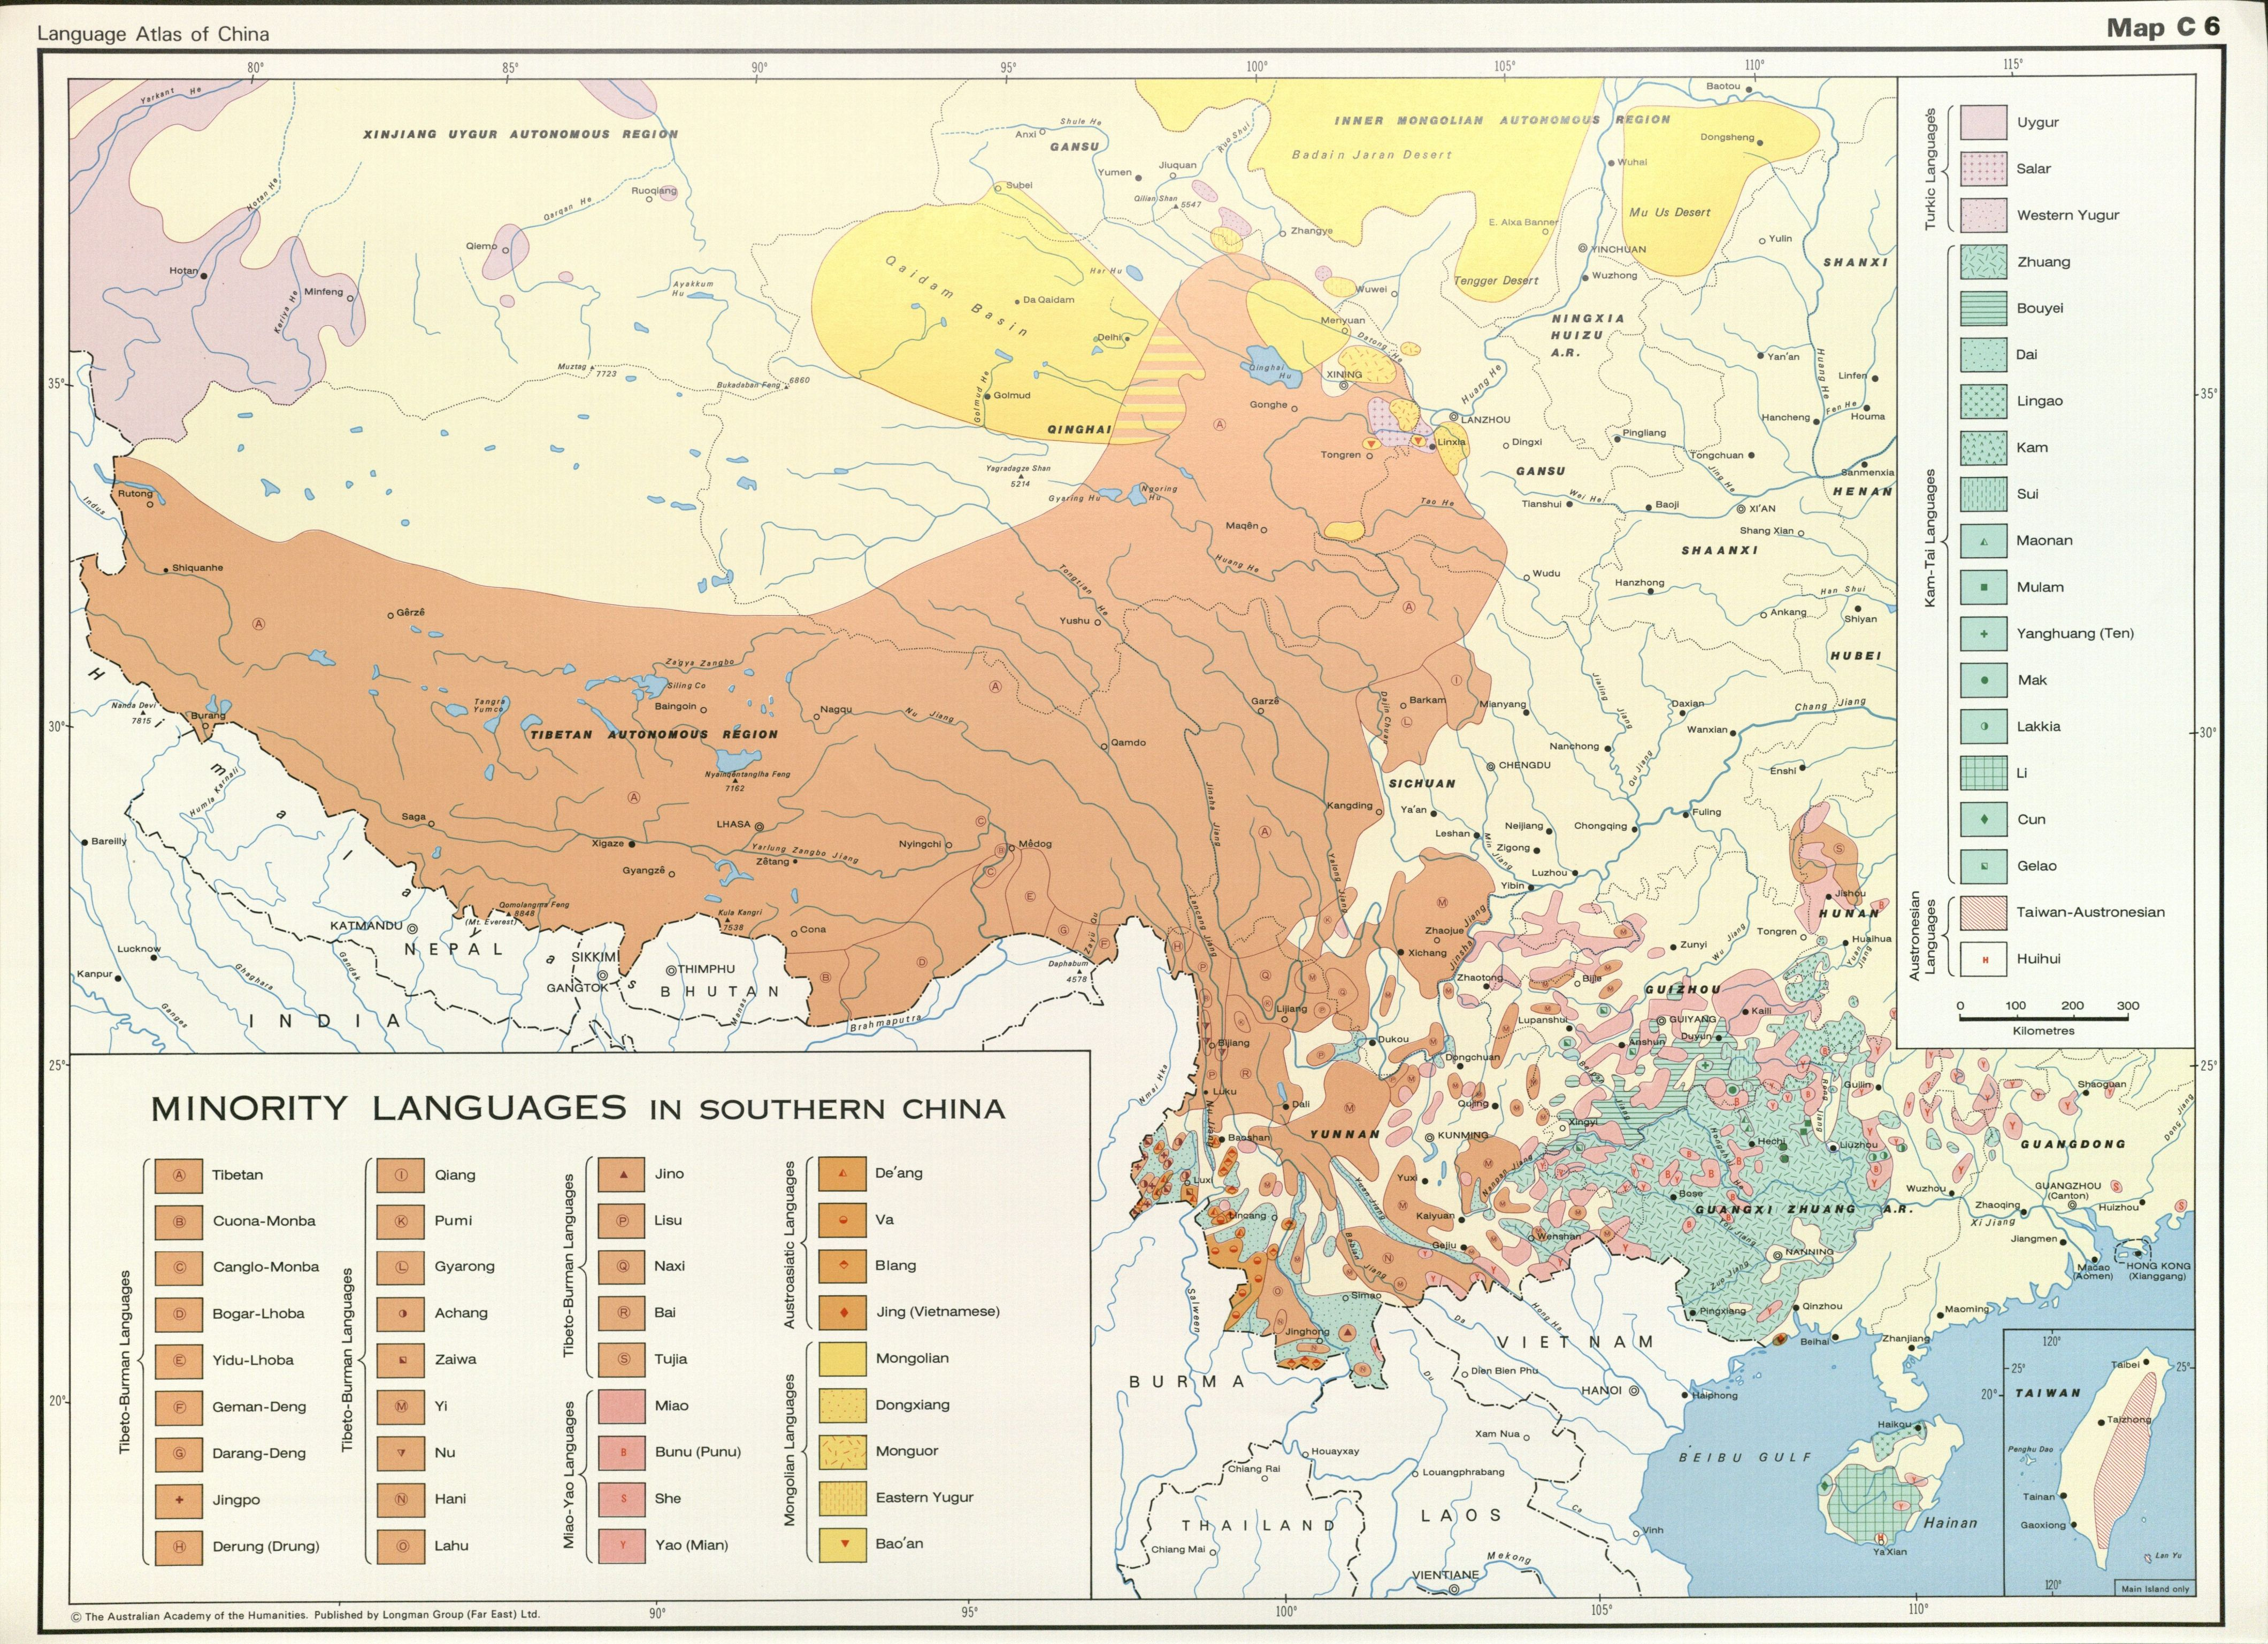 Language Atlas of China Minority Languages in Southern China